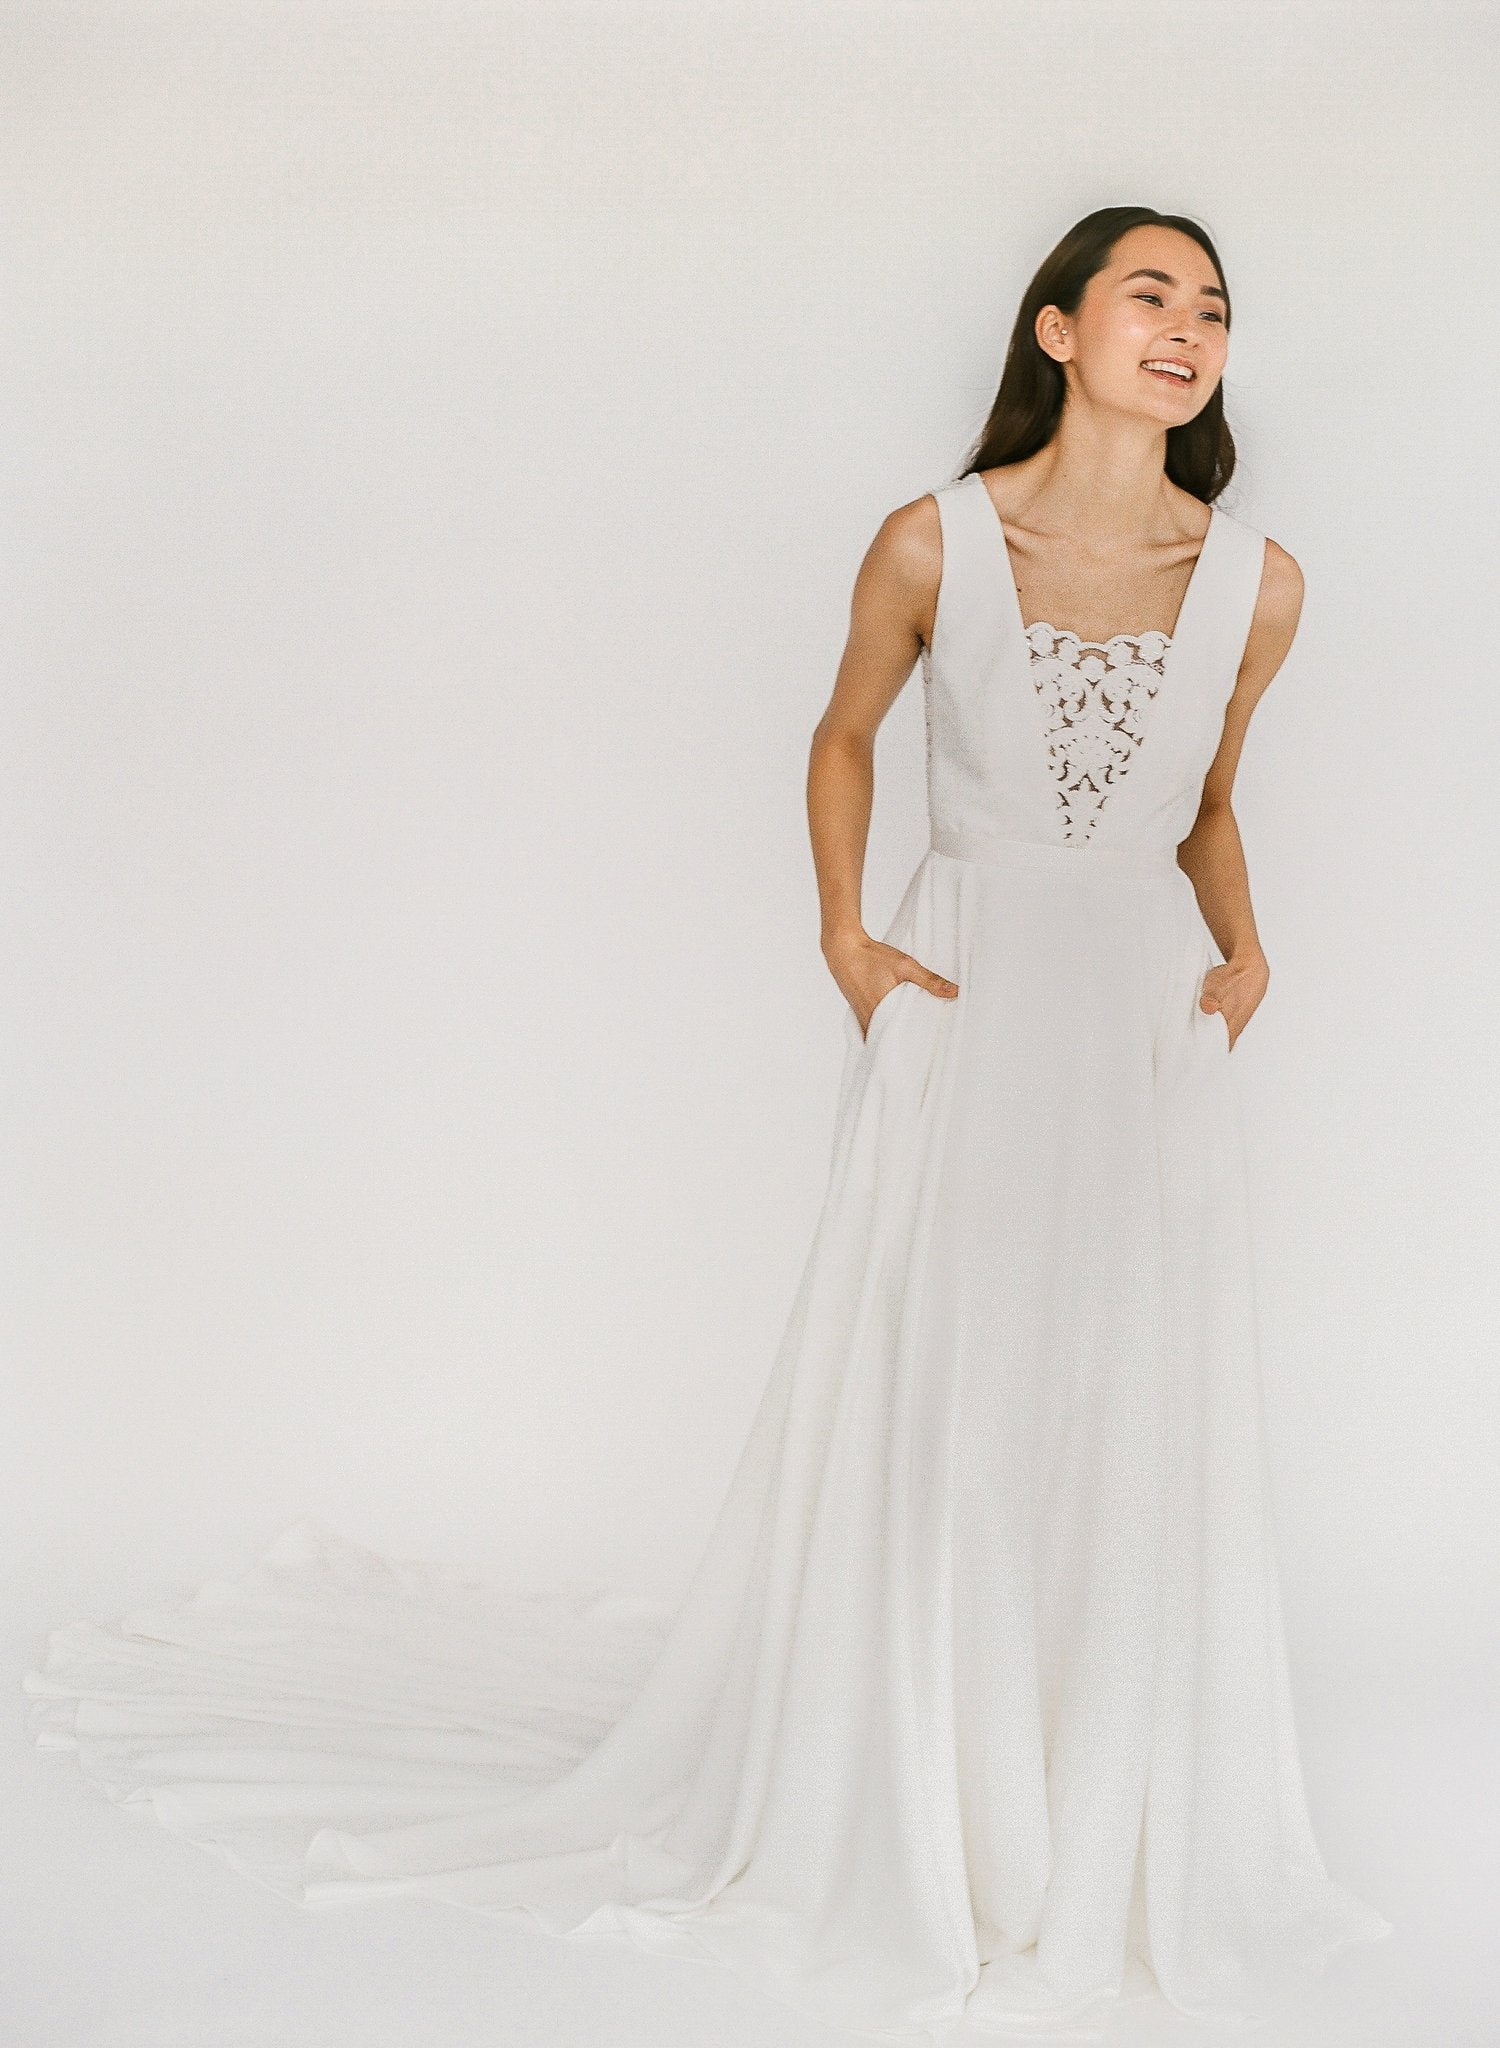 Elegant a-line crepe wedding dress with a low back, lace front, and pockets